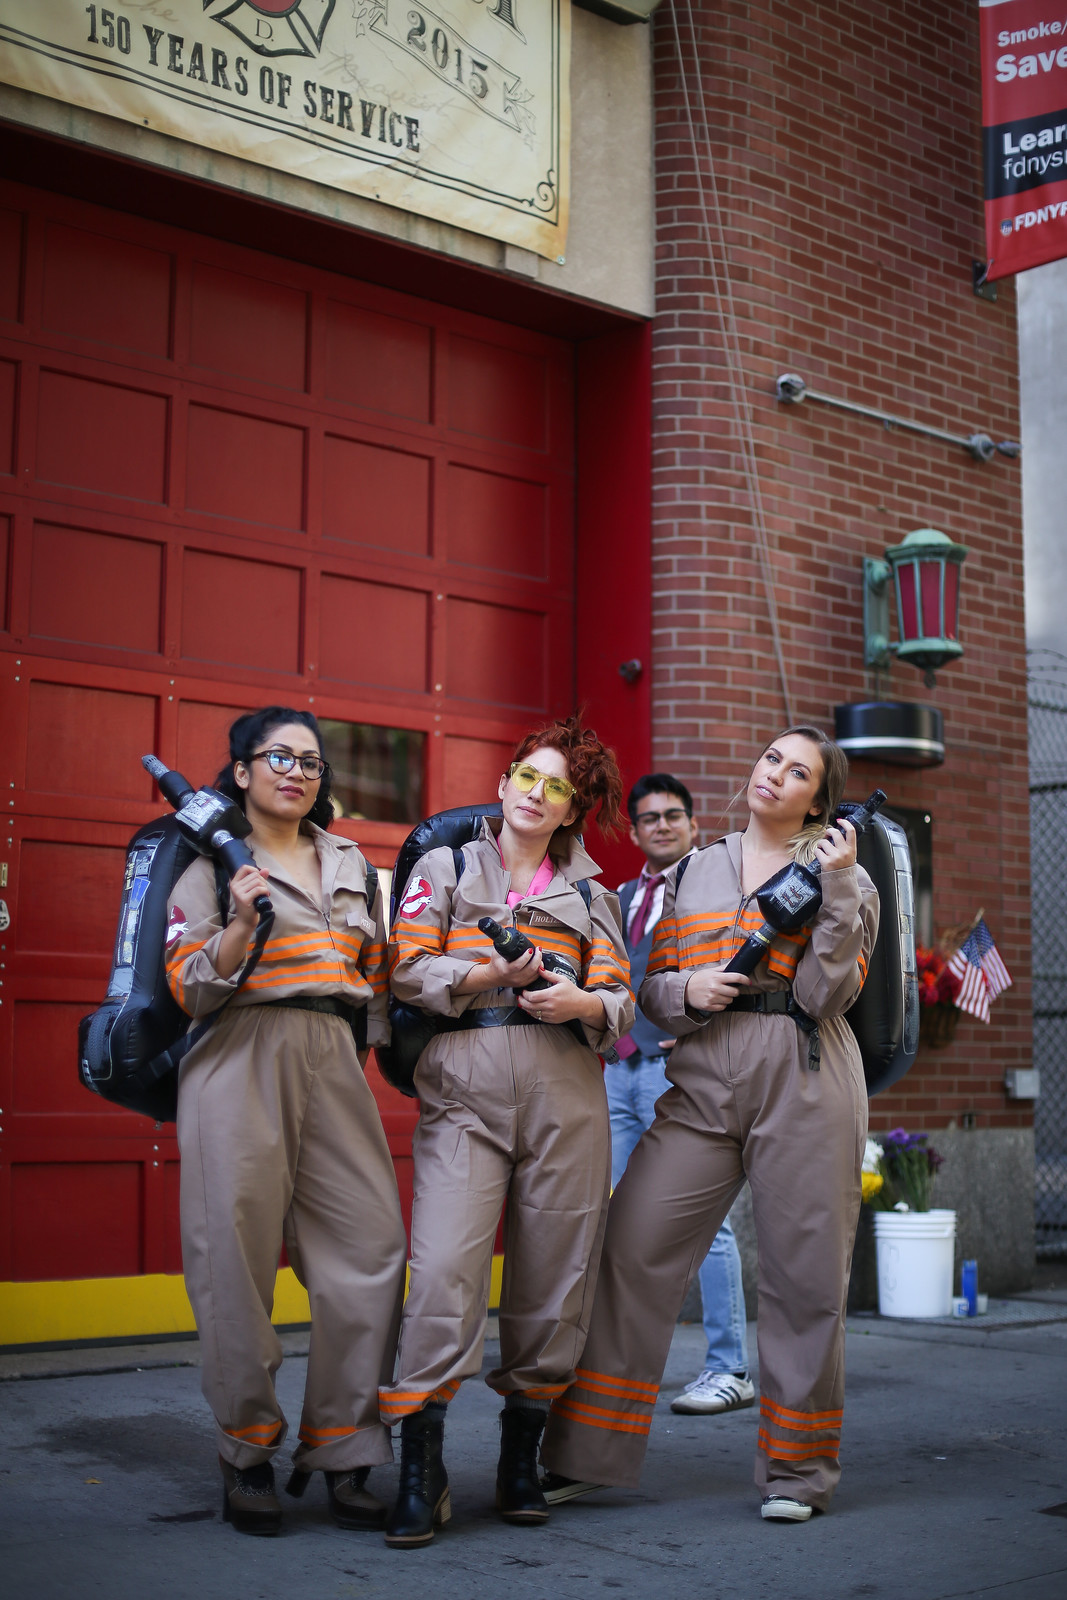 Ghostbusters Group Costume | Last Minute Halloween Costumes You Can Amazon Prime